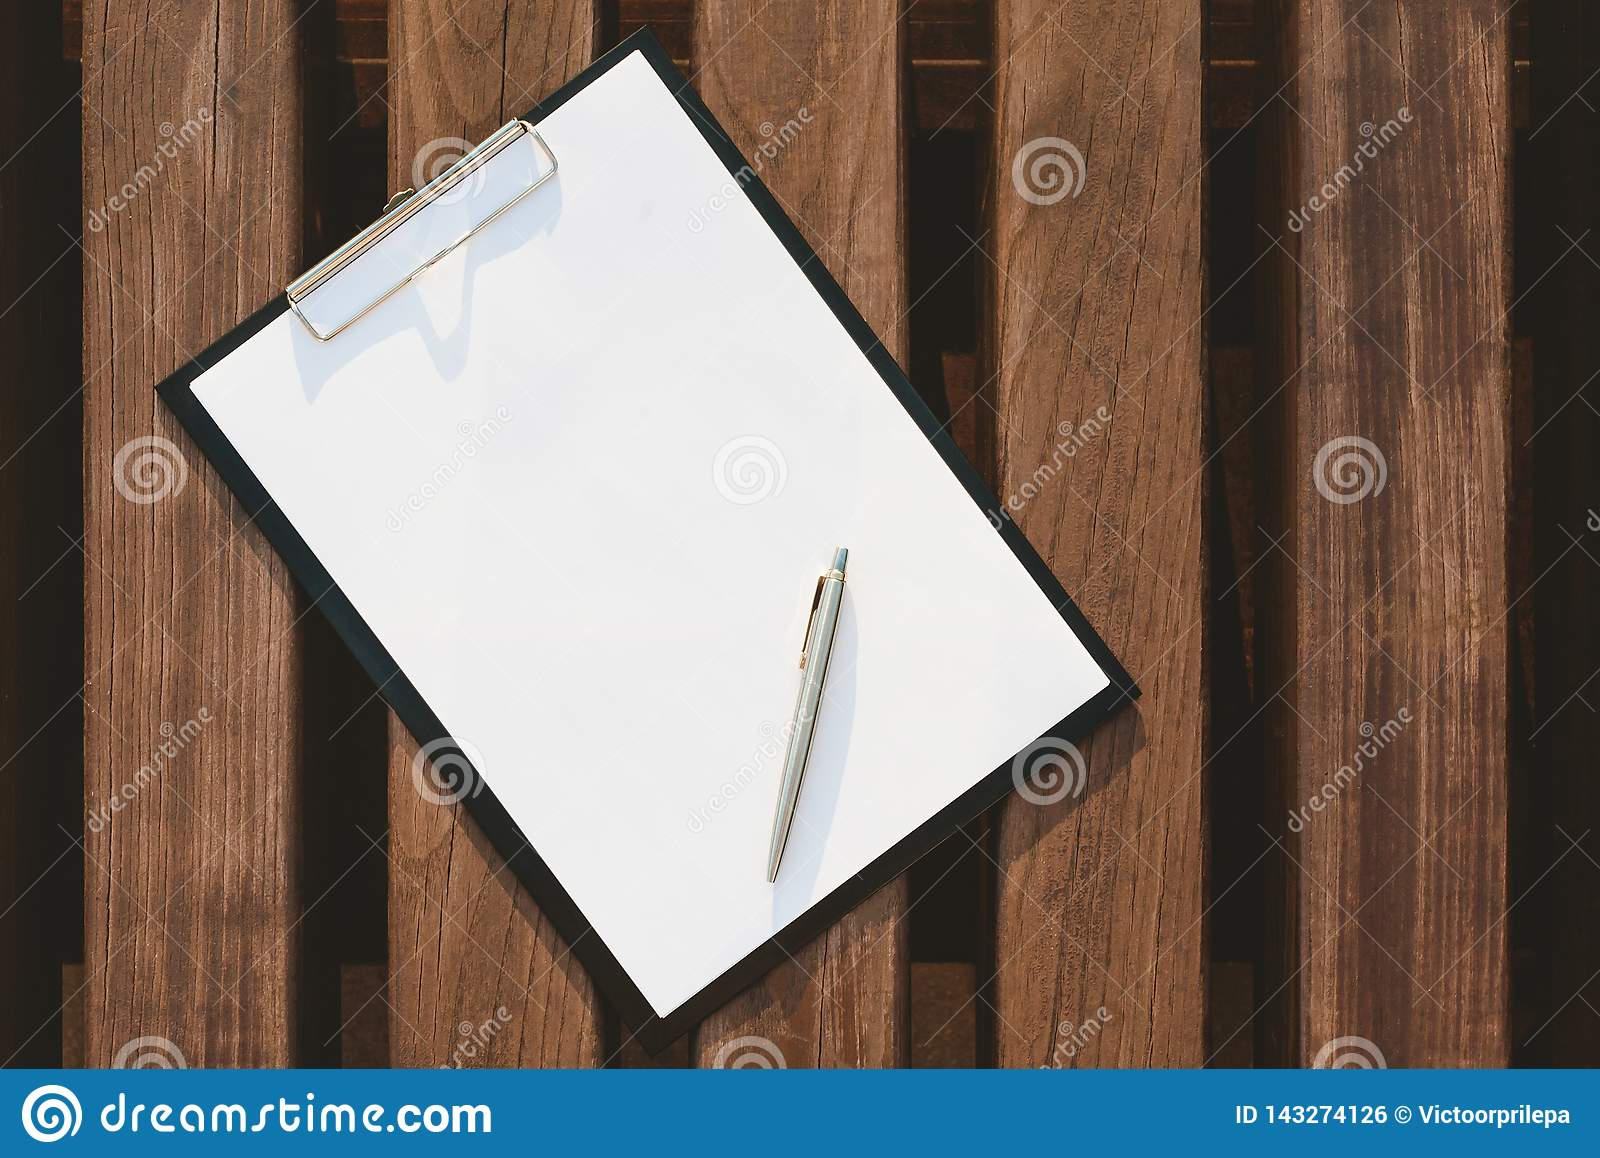 Mock Up of the tablet for the paper on the background of wooden wall.